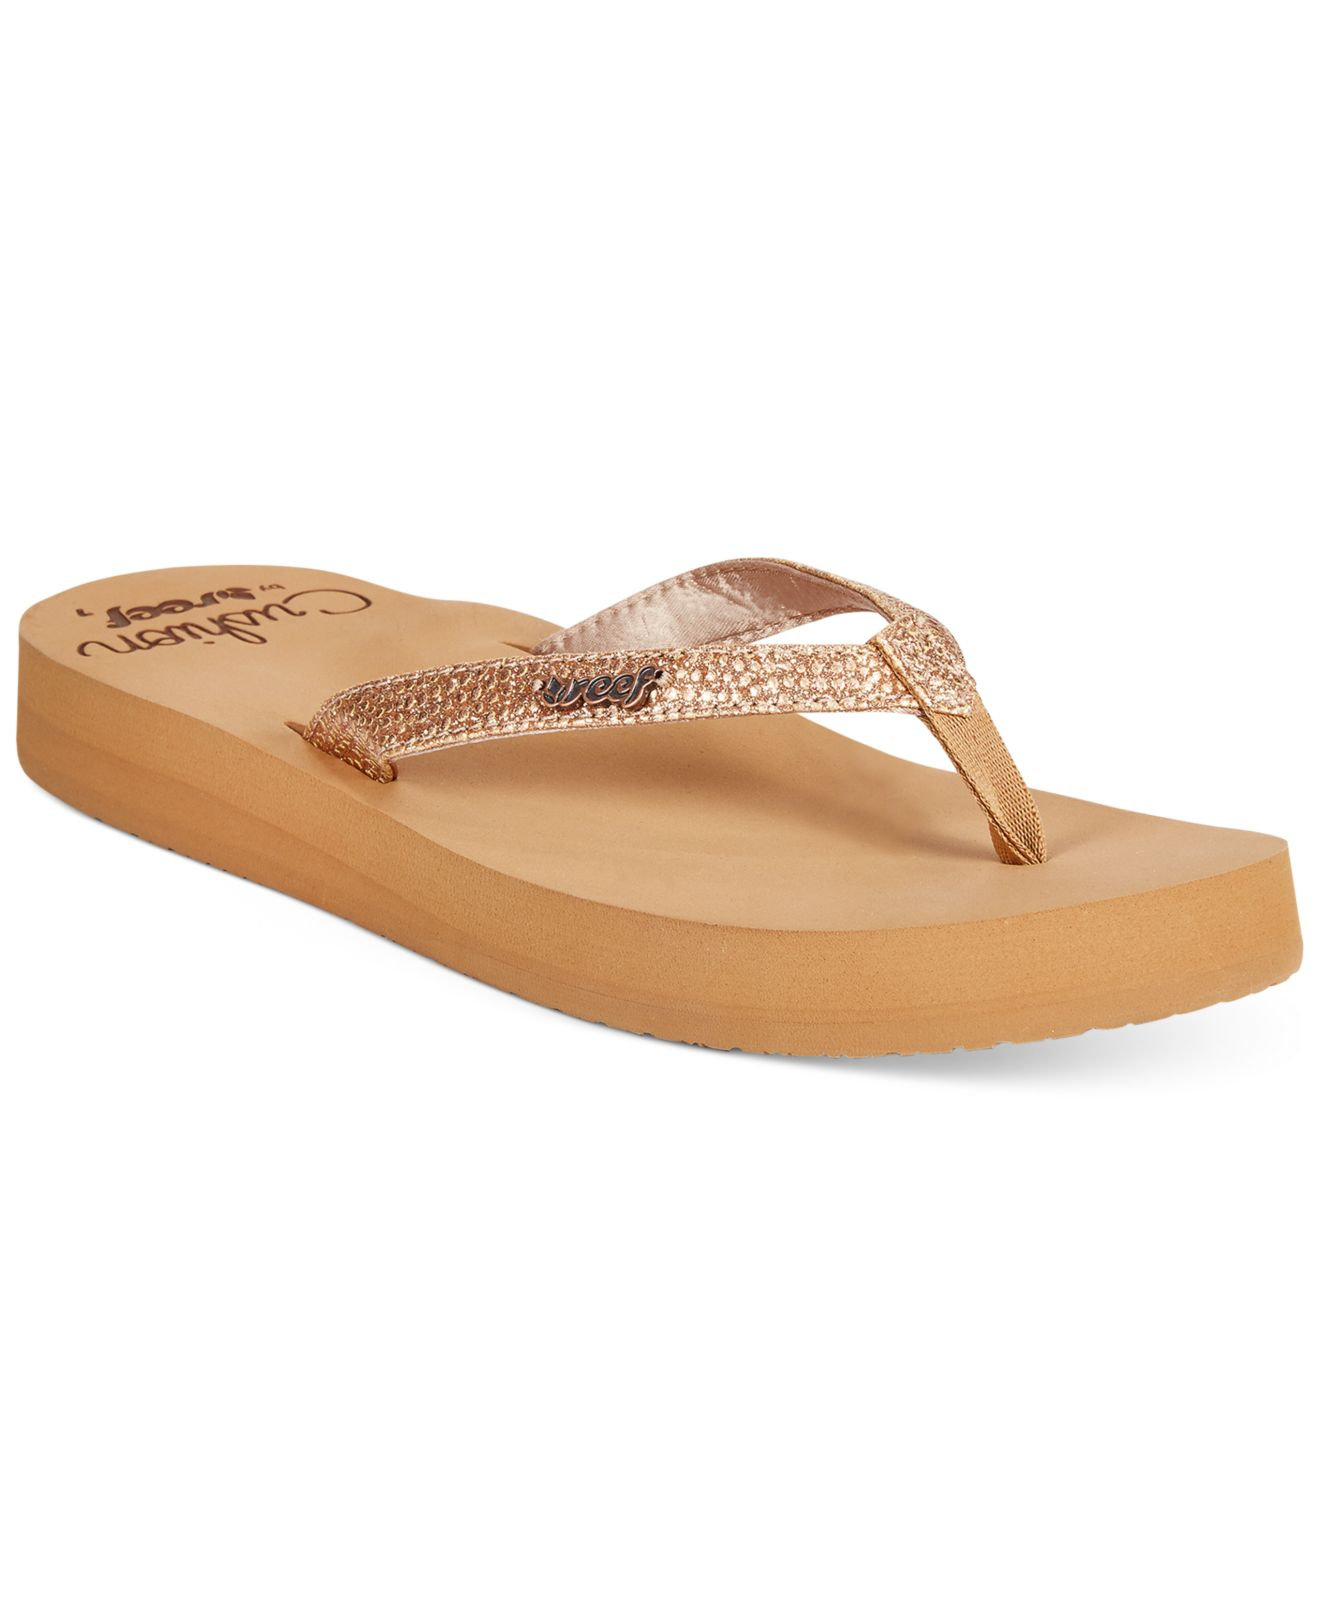 Lyst Reef In Flip Star Sassy Cushion Flops Pink rrxUnTq